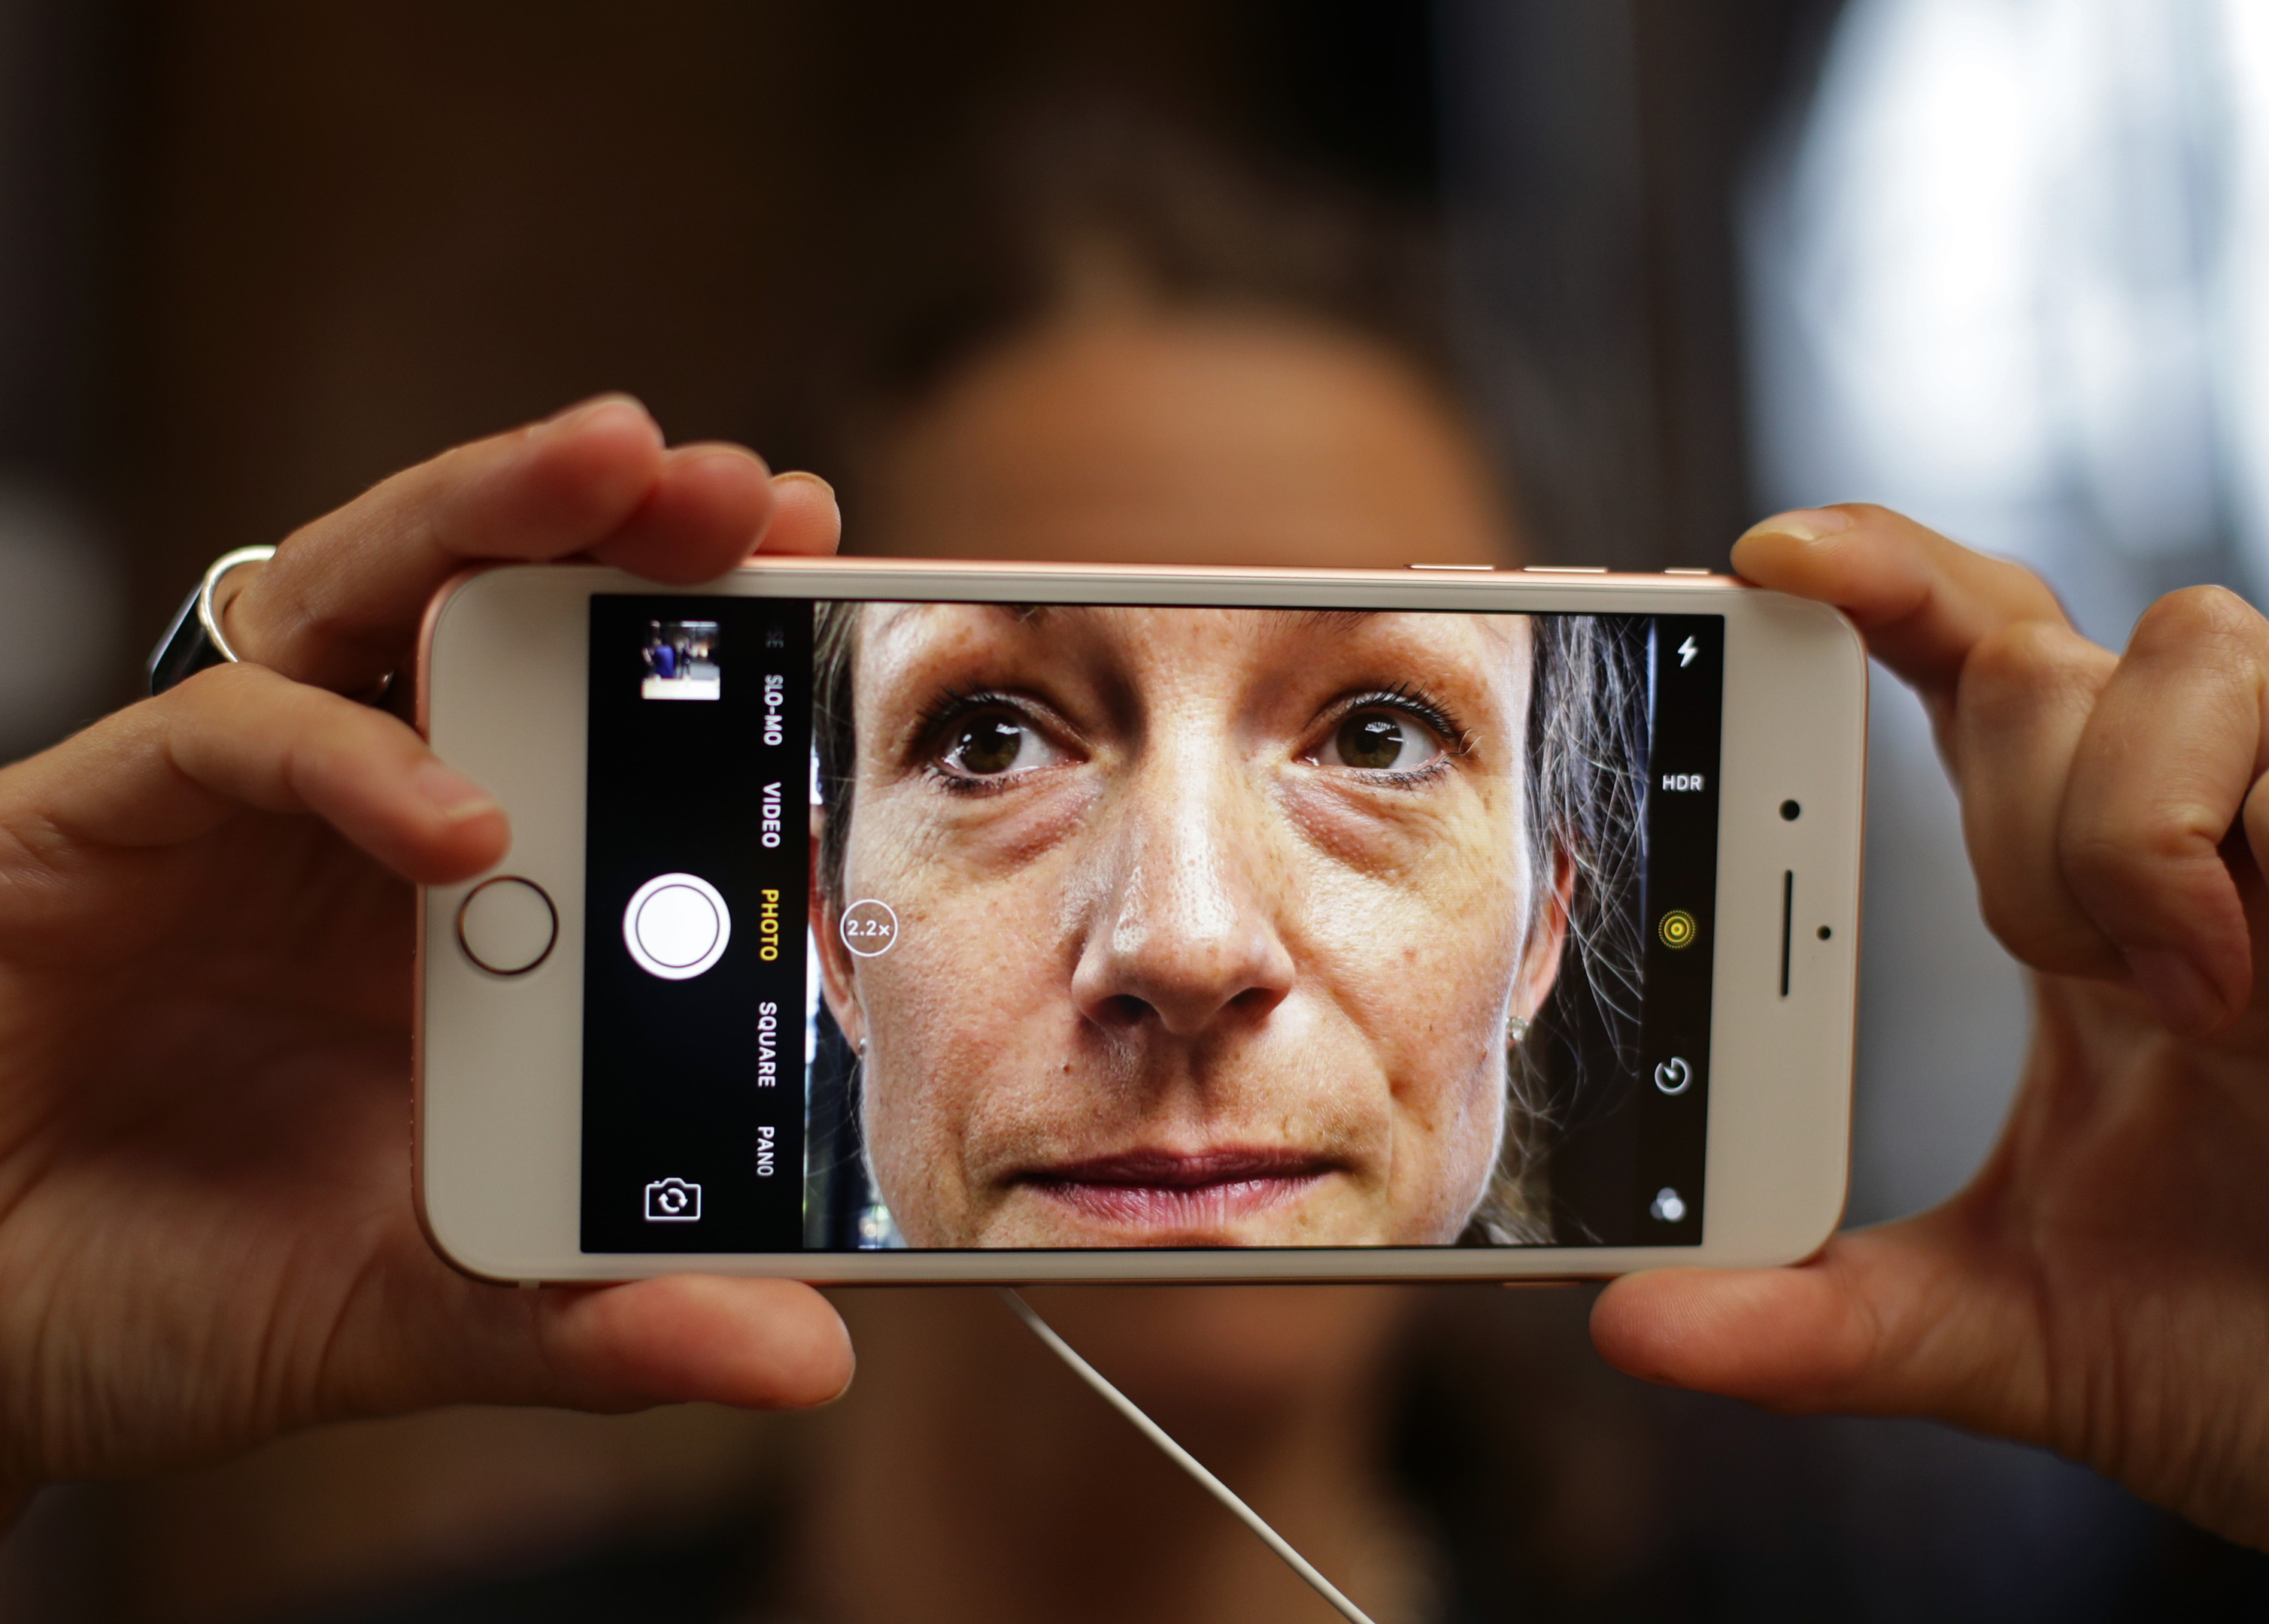 Kathrin Milic tests the camera on an iPhone 7 in the Apple Store in Covent Garden, London.